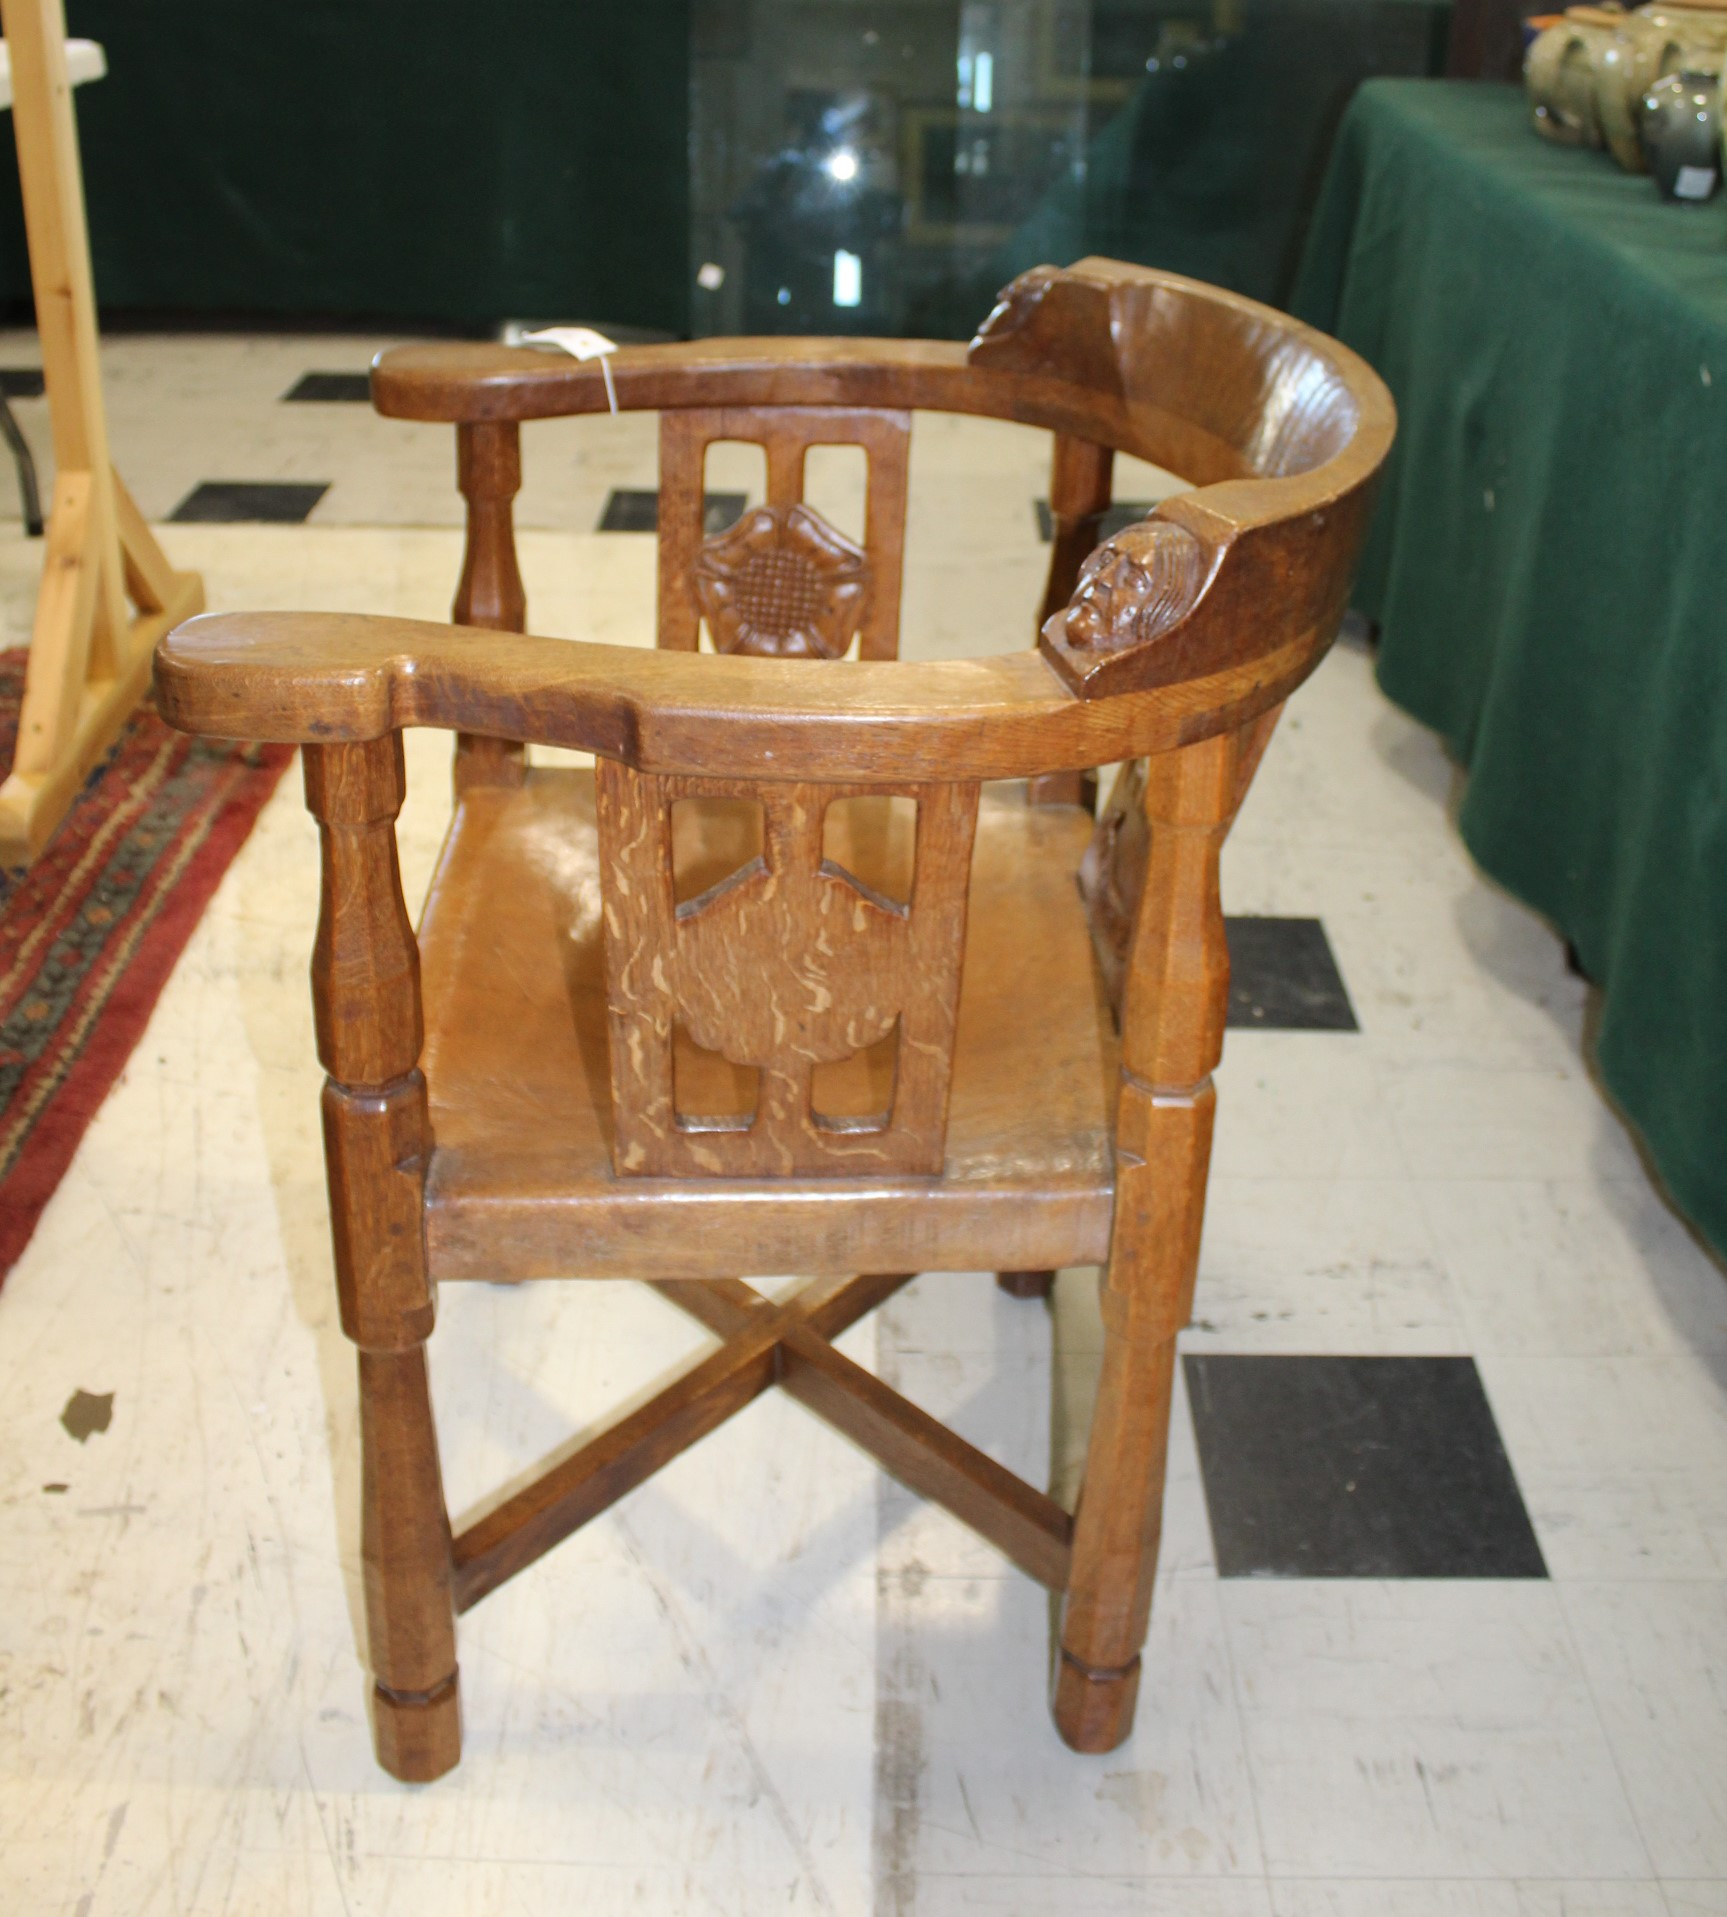 ROBERT THOMPSON OF KILBURN - MOUSEMAN MONKS CHAIR a circa 1920s/1930s oak Monk's armchair with a - Image 10 of 27